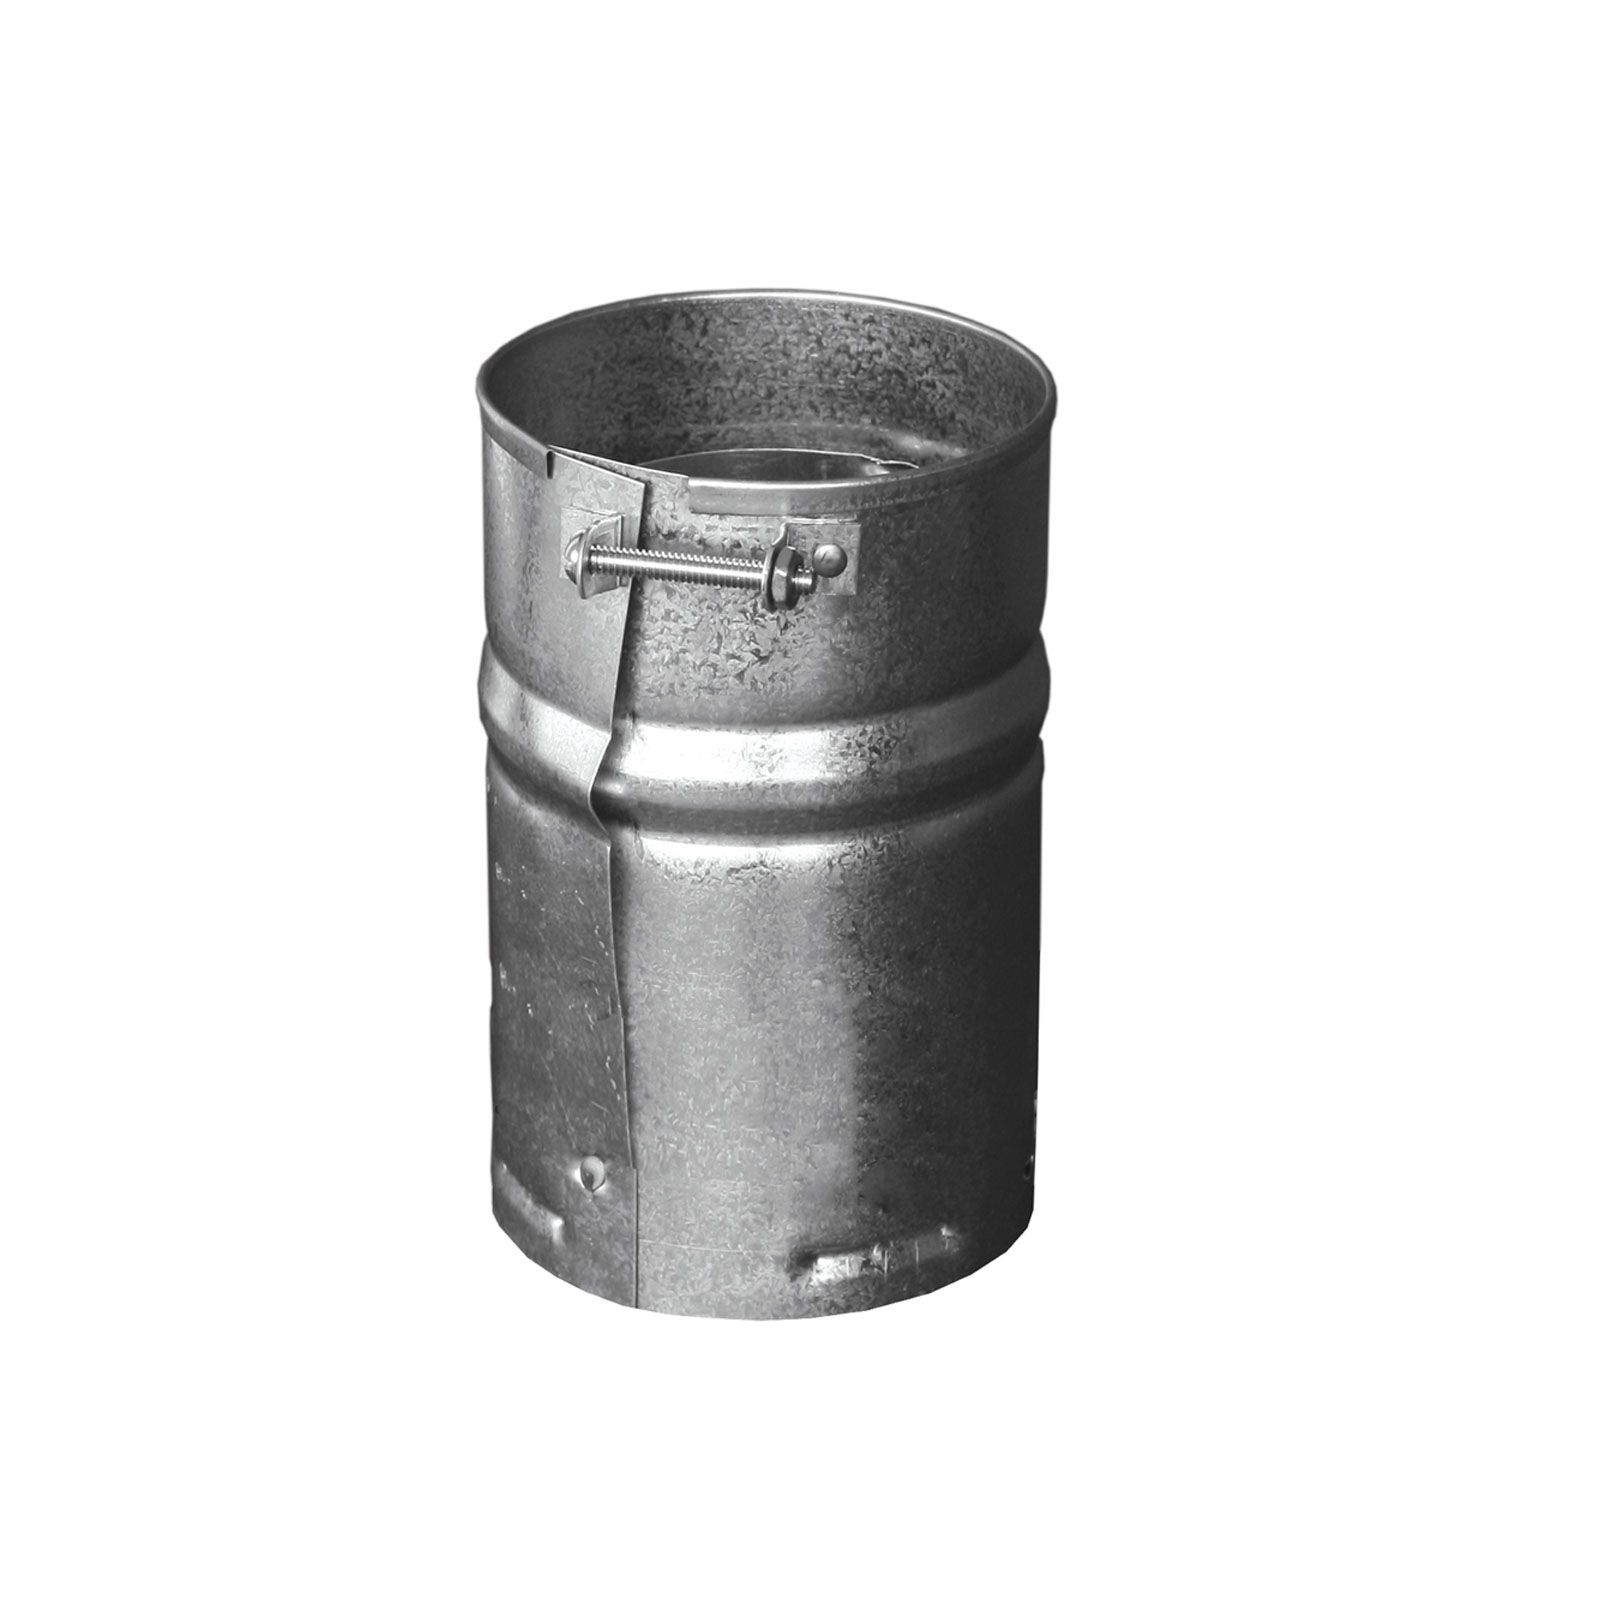 "M&G DuraVent 6GVAF - Aluminum Female Adapter with 6"" Inner Diameter"